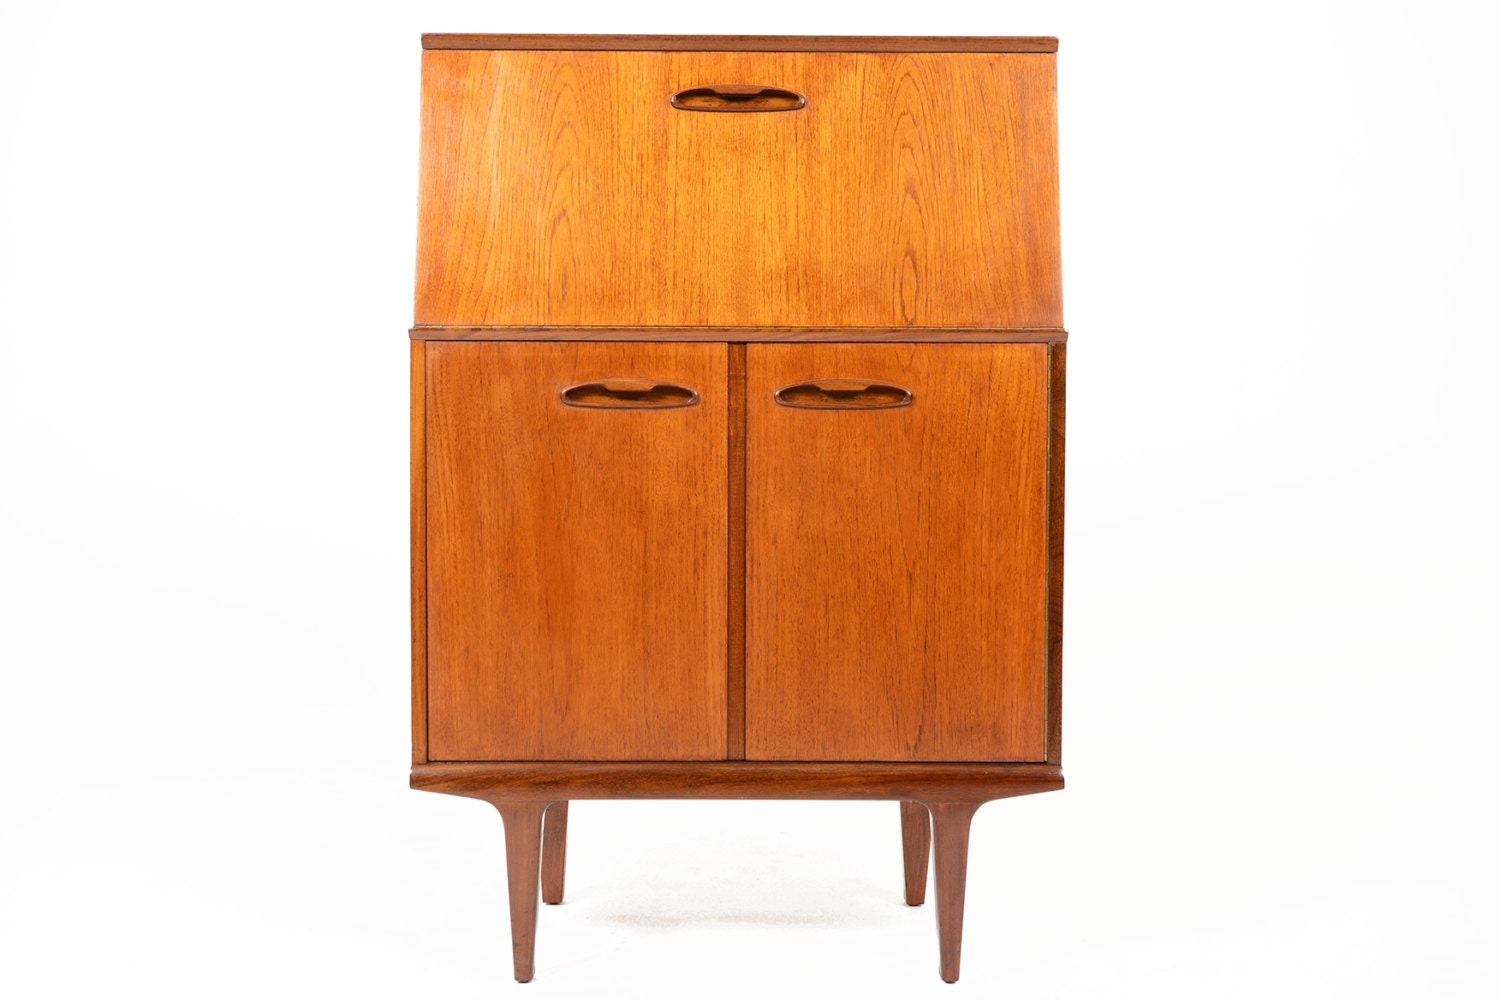 Danish Mid Century Modern Small Secretary Desk In Teak